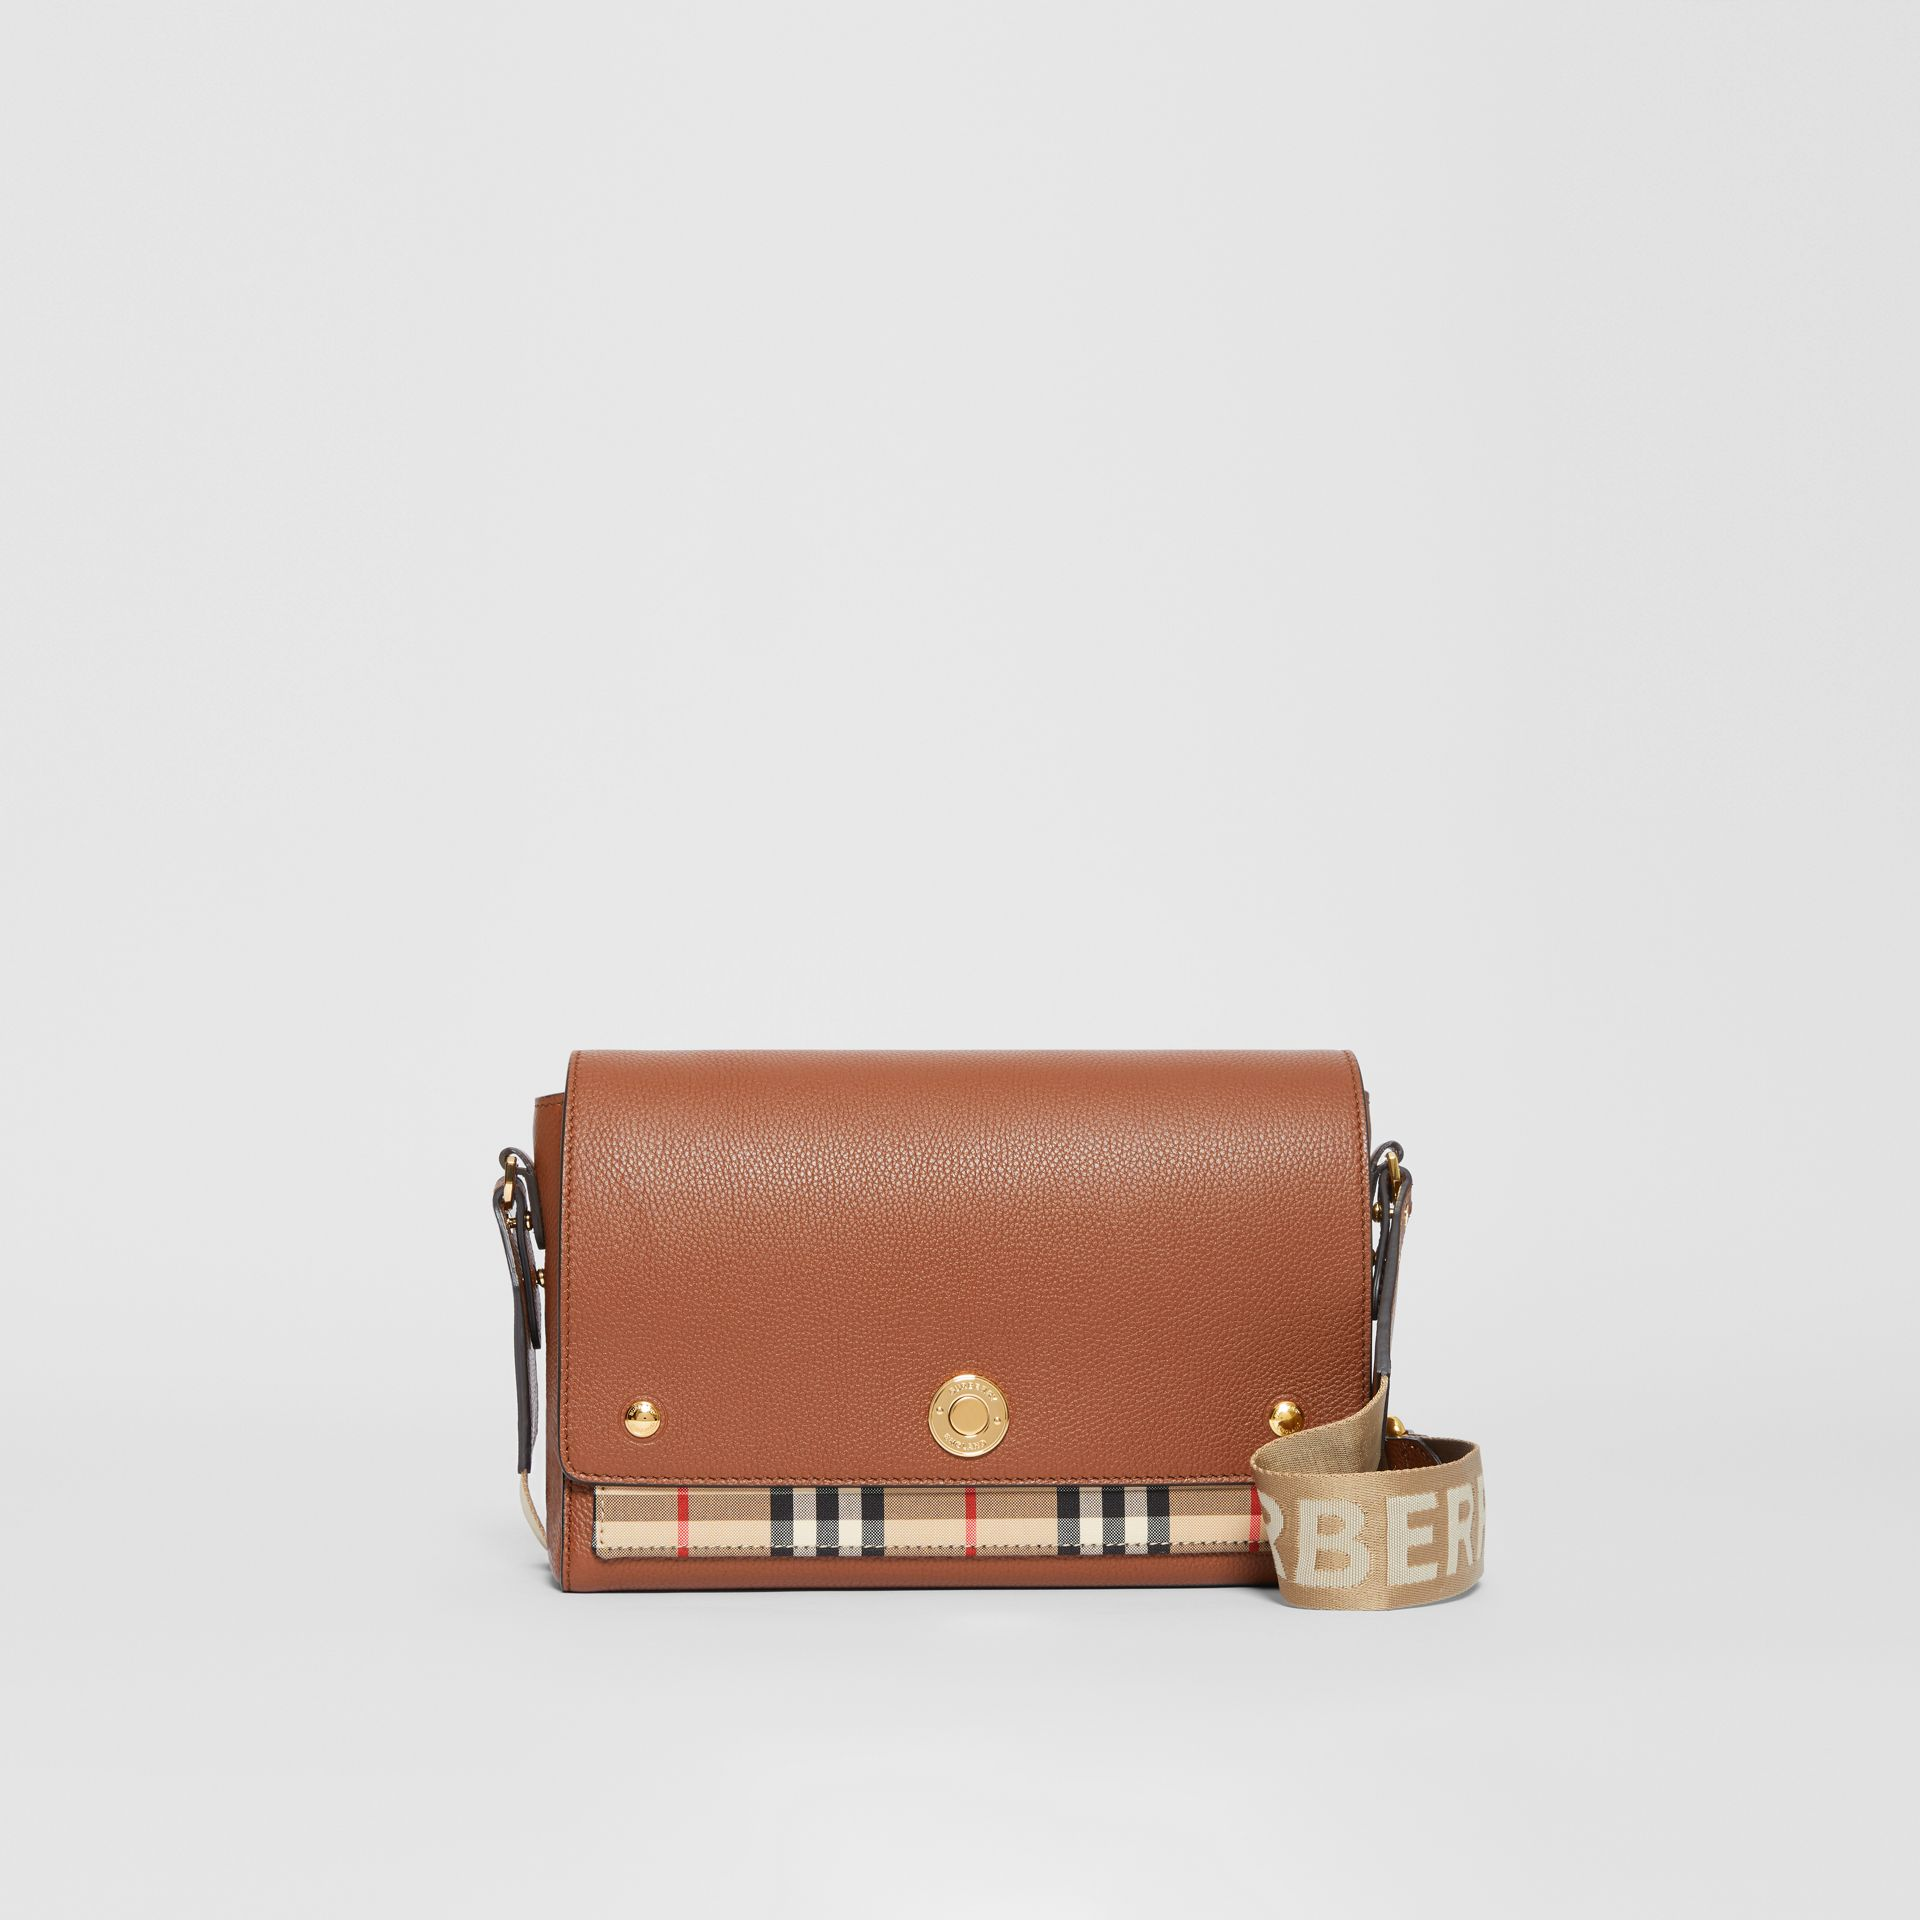 Leather and Vintage Check Note Crossbody Bag in Tan - Women | Burberry Canada - gallery image 0